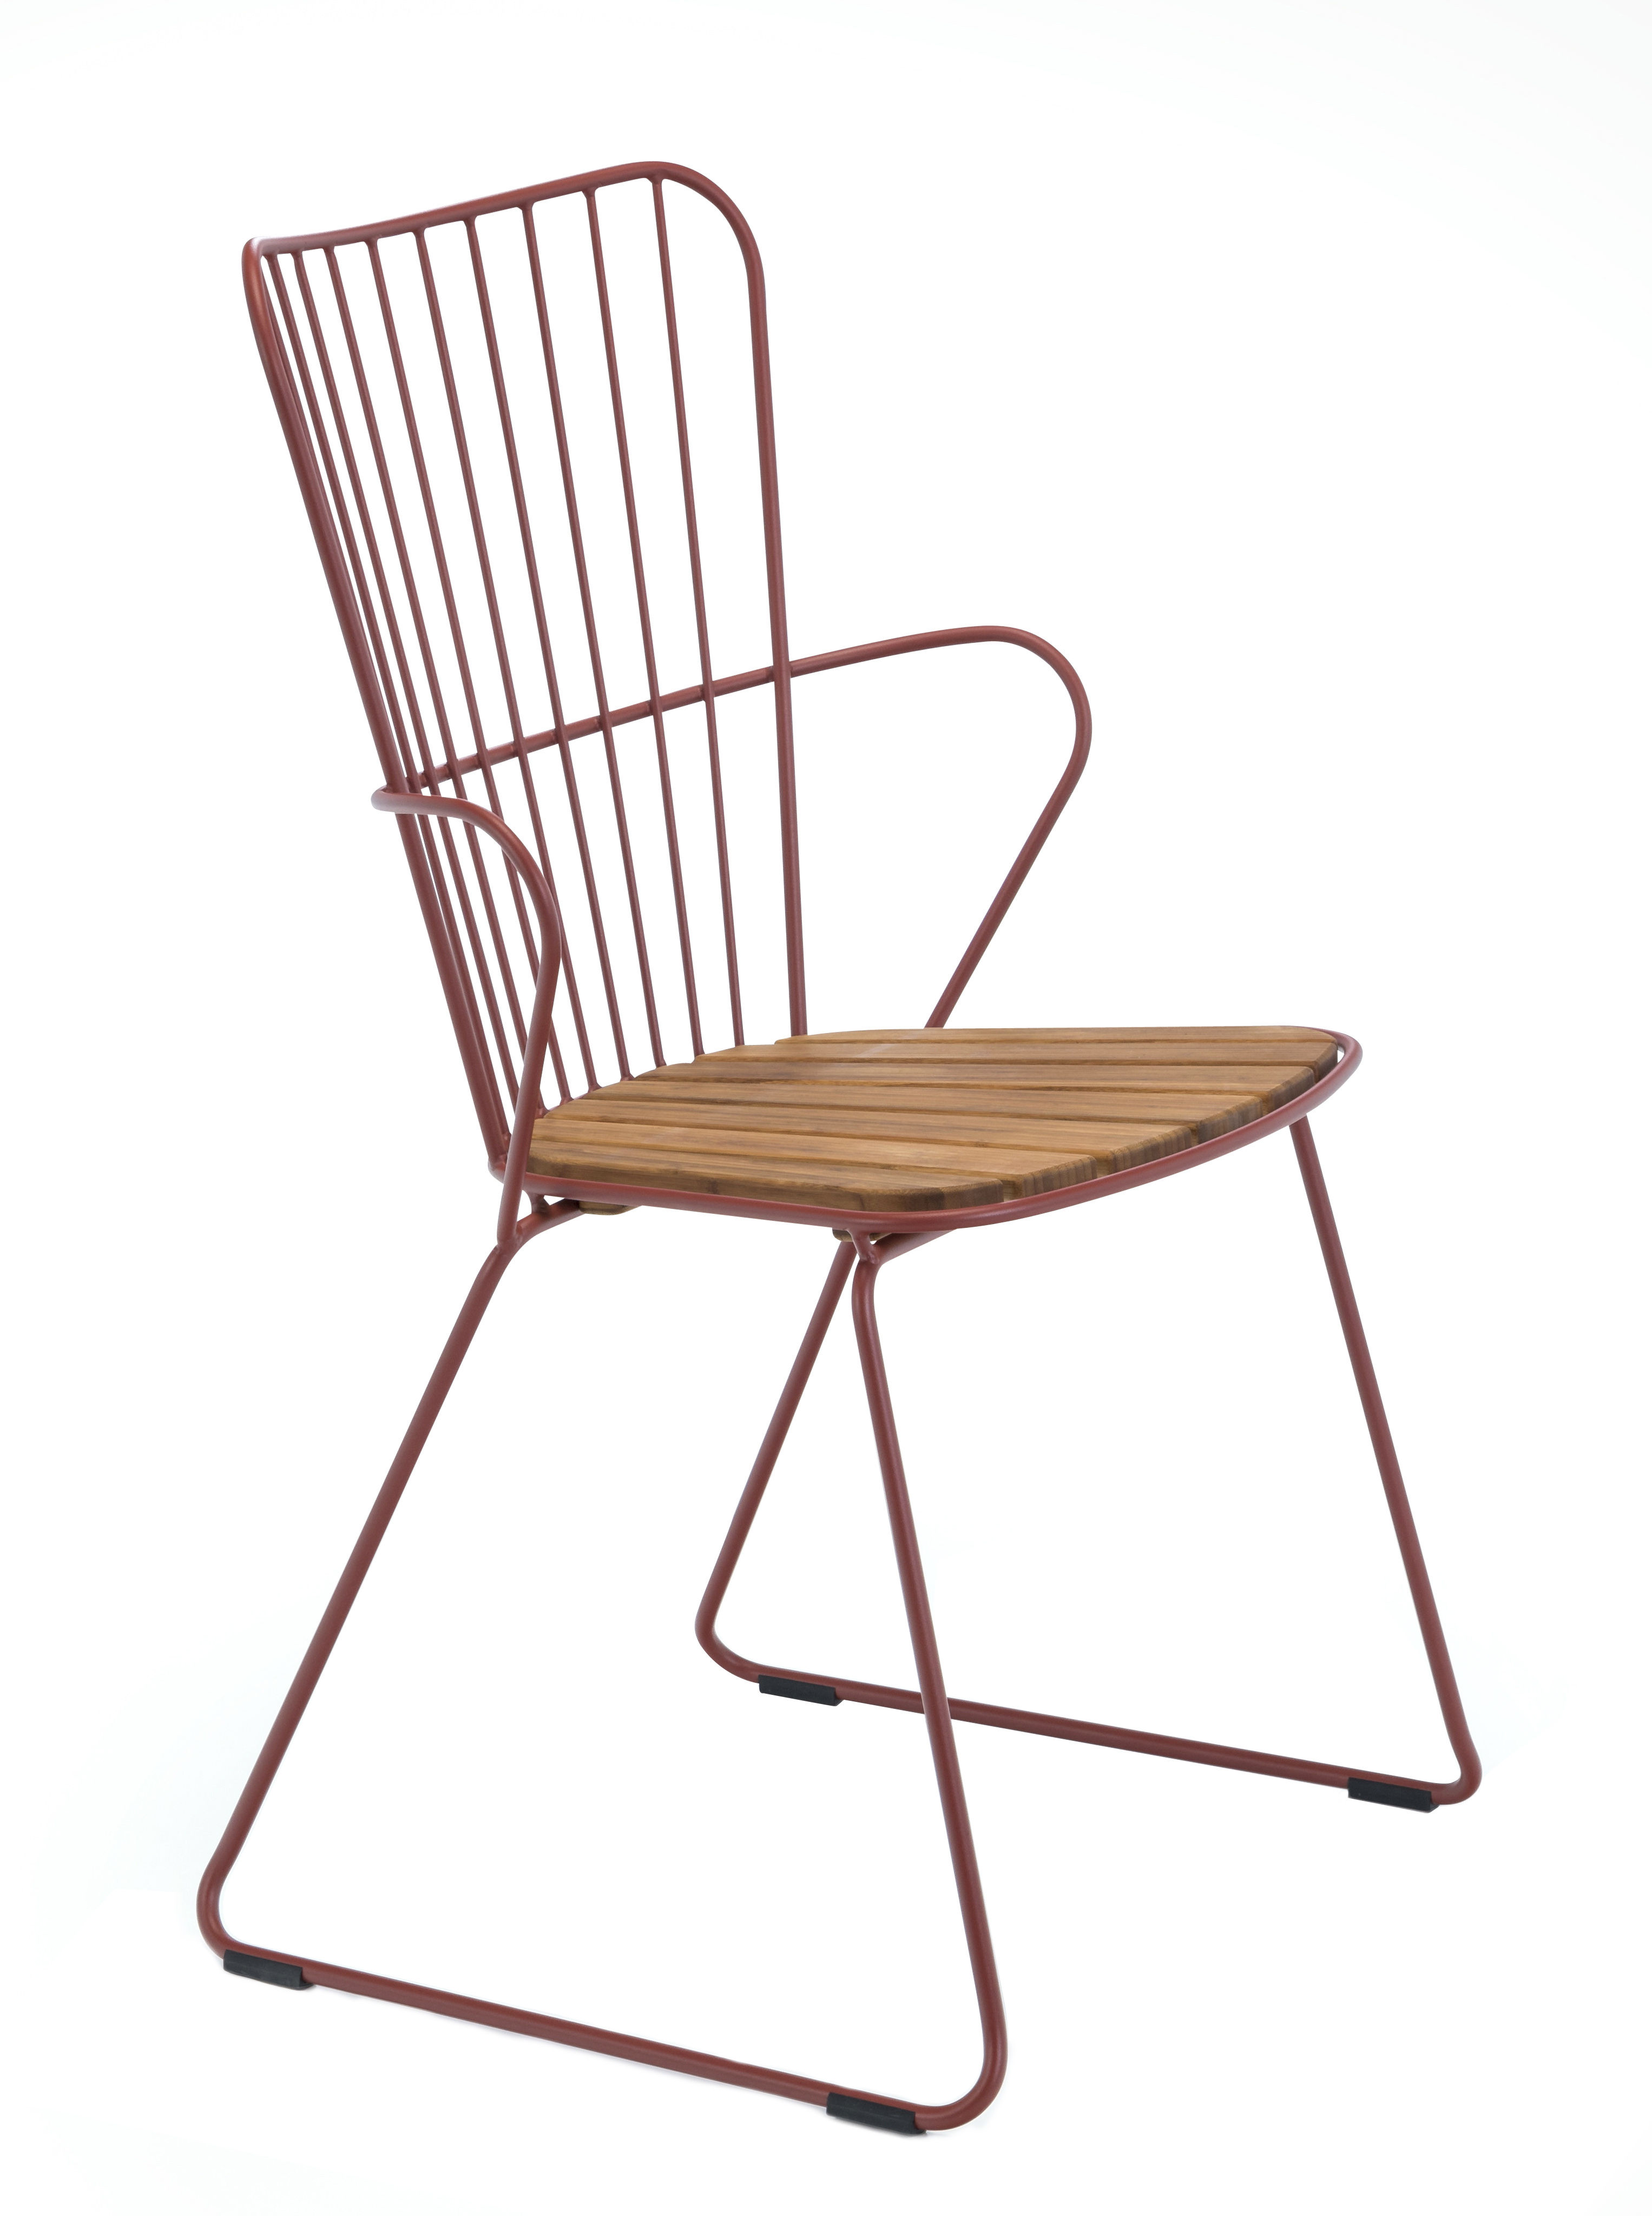 Furniture - Chairs - Paon Armchair - / Metal & bamboo by Houe - Armchair / Paprika - Bamboo, Powder-coated steel